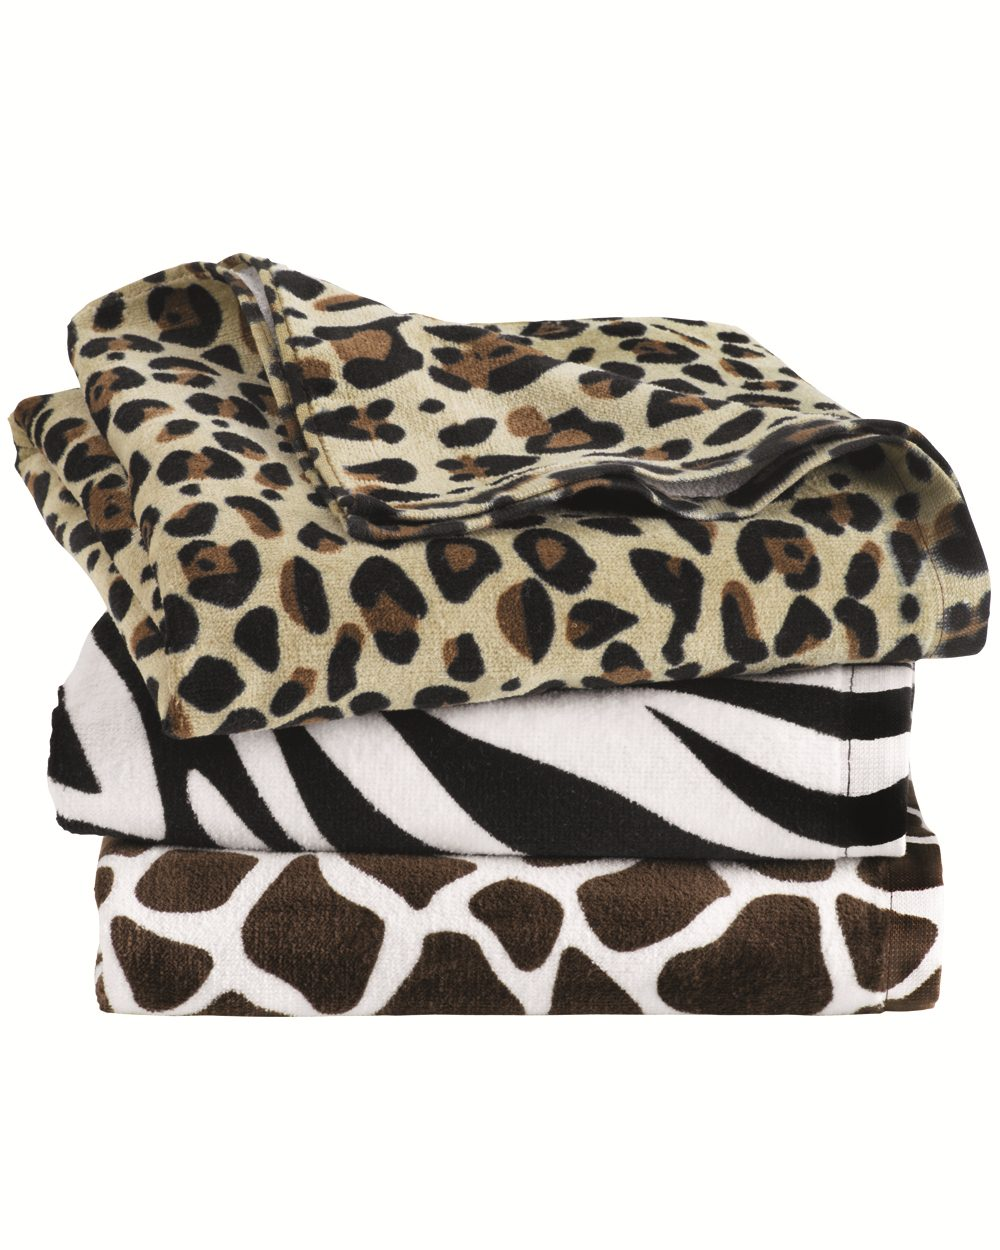 Carmel Towel Company C3060P - Animal Print Velour Beach ...